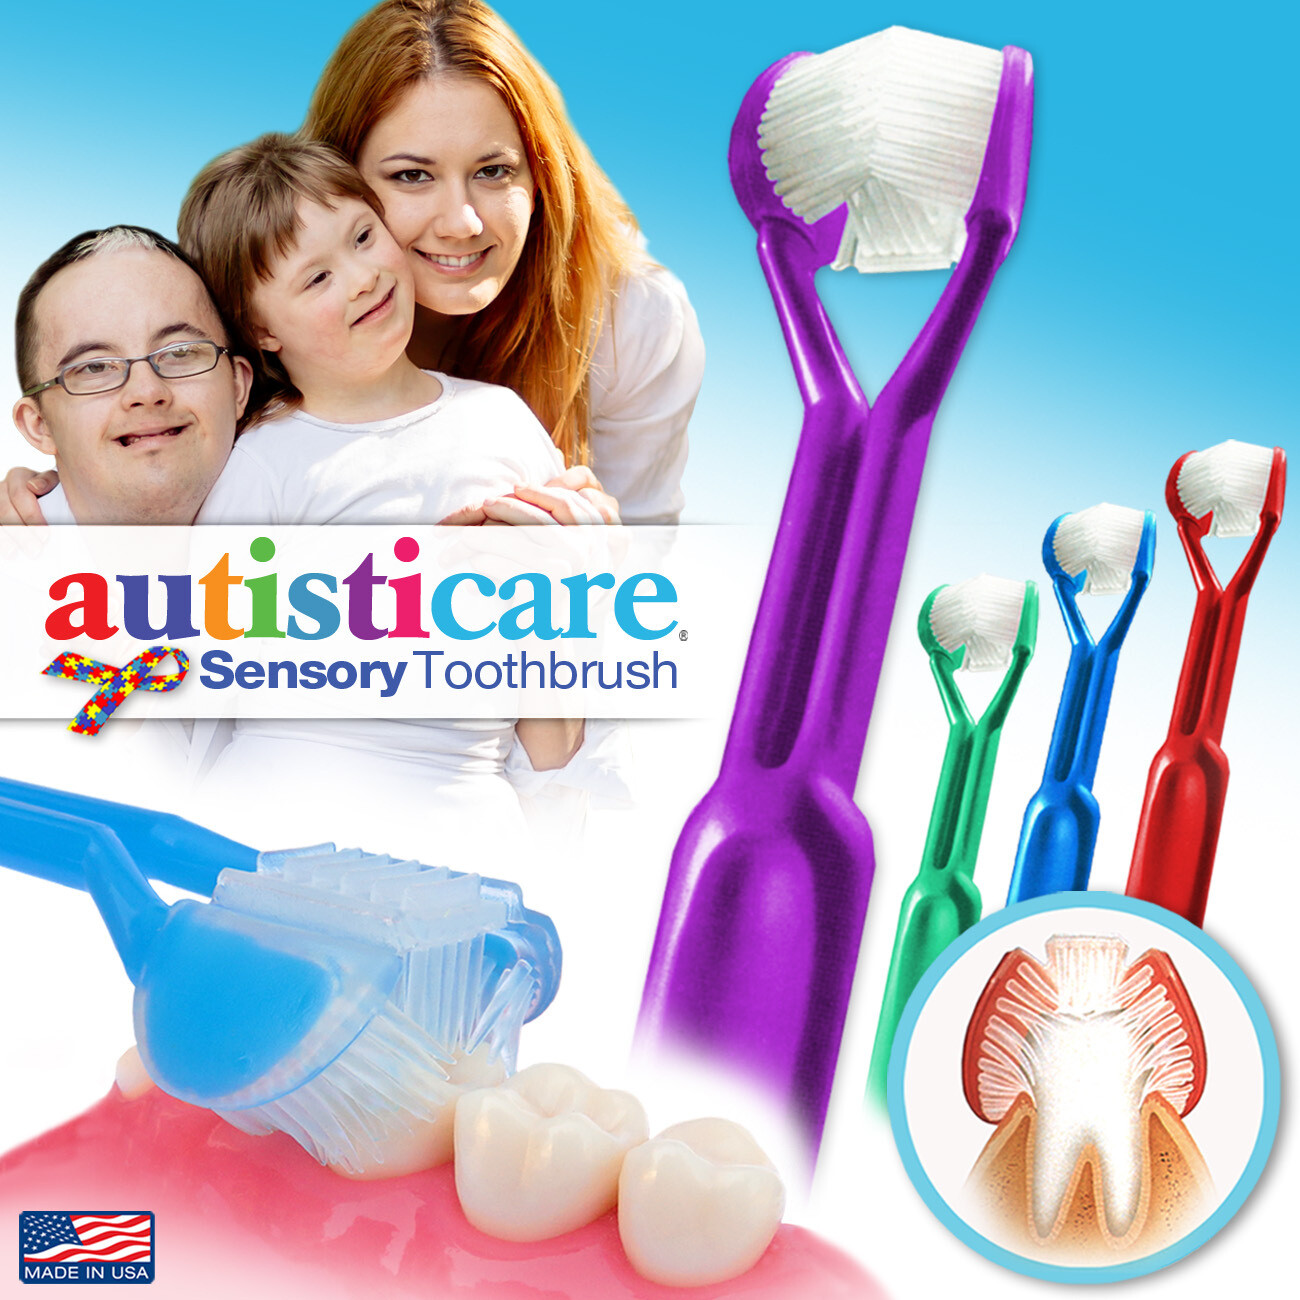 4-PK | DenTrust Autisticare | The Only Child-Safe 3-Sided Toothbrush | Made in USA | Fast, Easy & Clinically Proven | Special Needs Autism Autistic Asperger Therapy Caregiver Tactile Sensory Calming